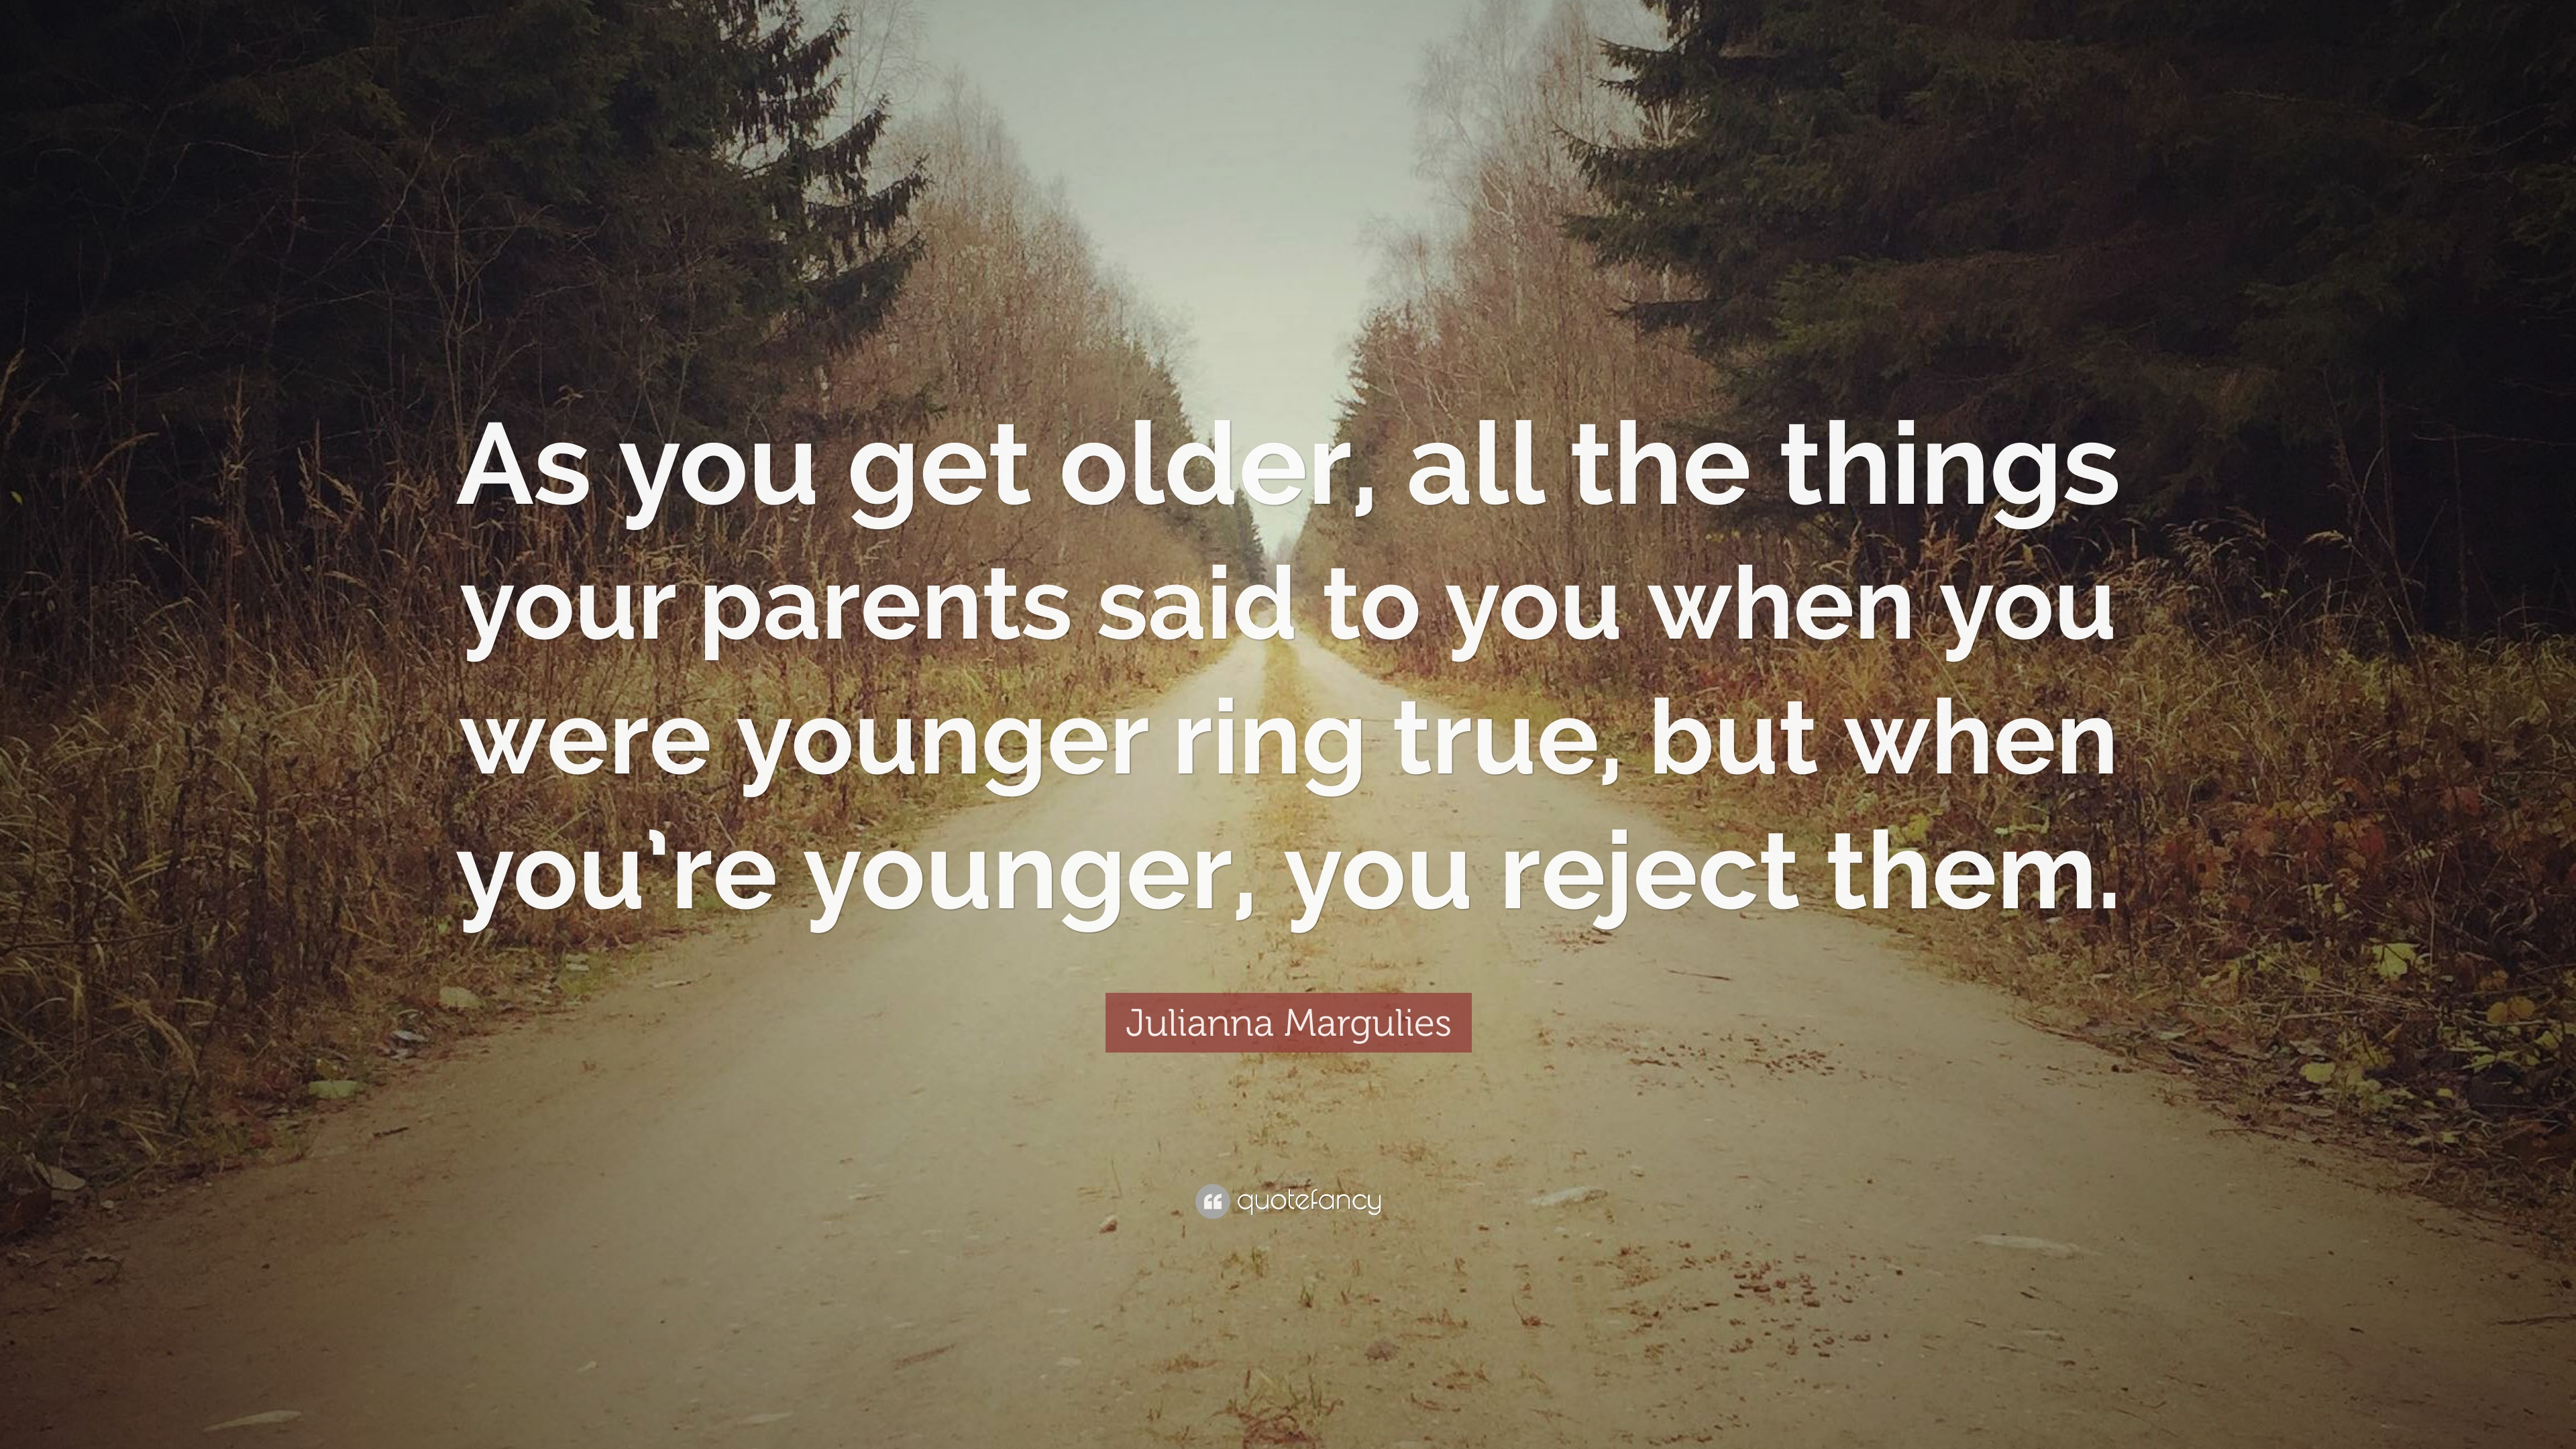 Julianna Margulies Quote As You Get Older All The Things Your